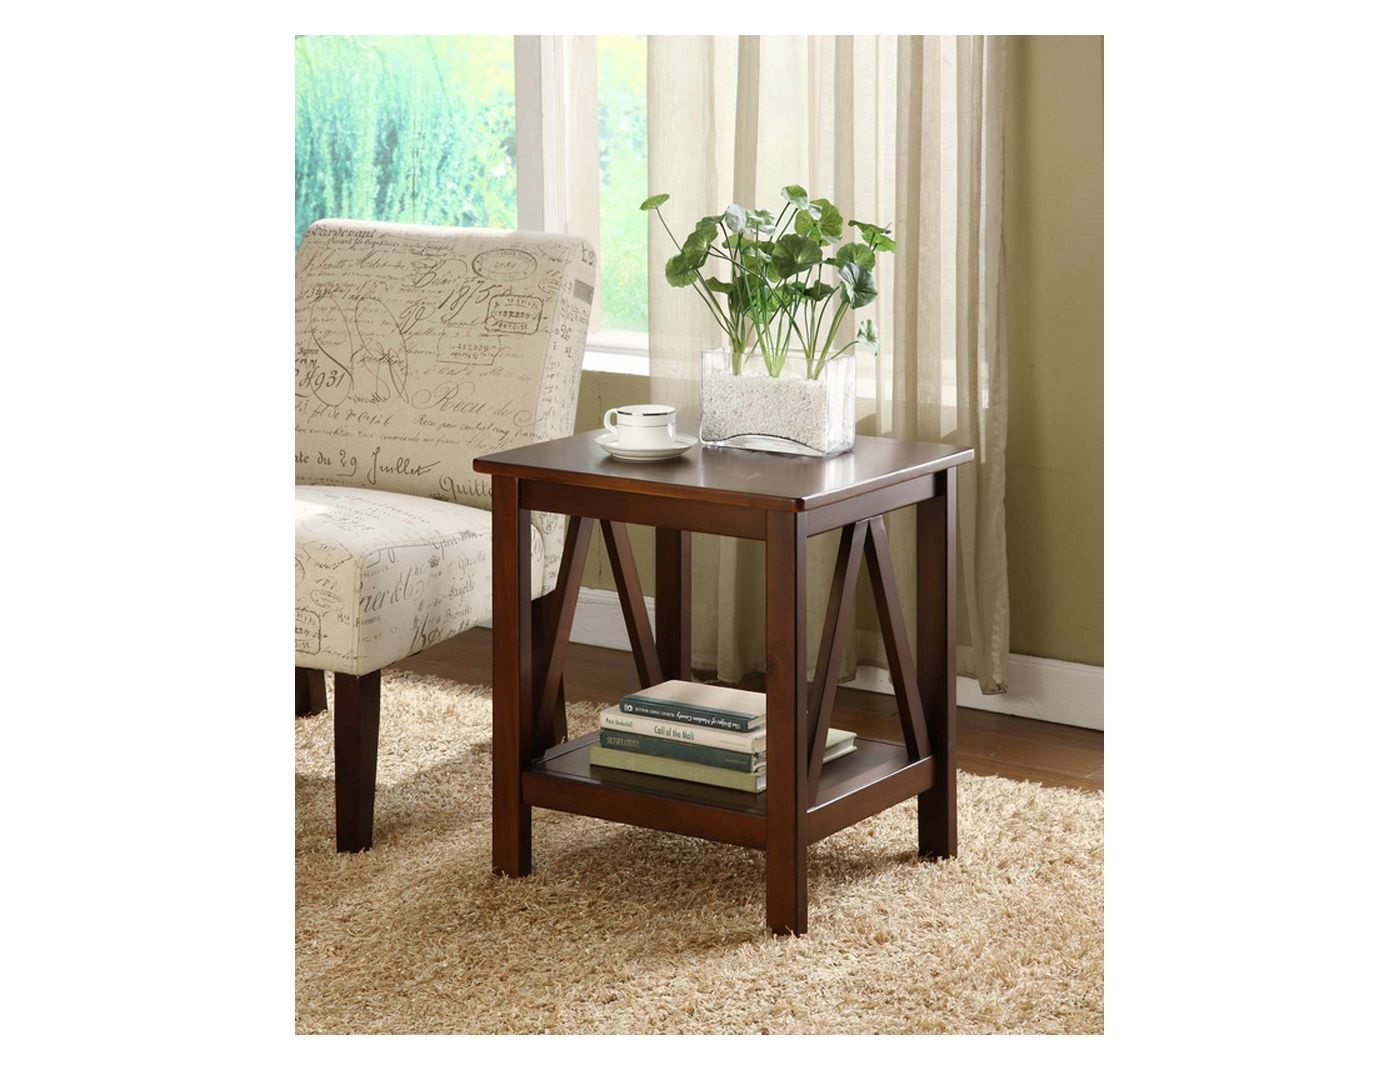 Titian End Table Brown Linon In 2019 End Tables Table Room